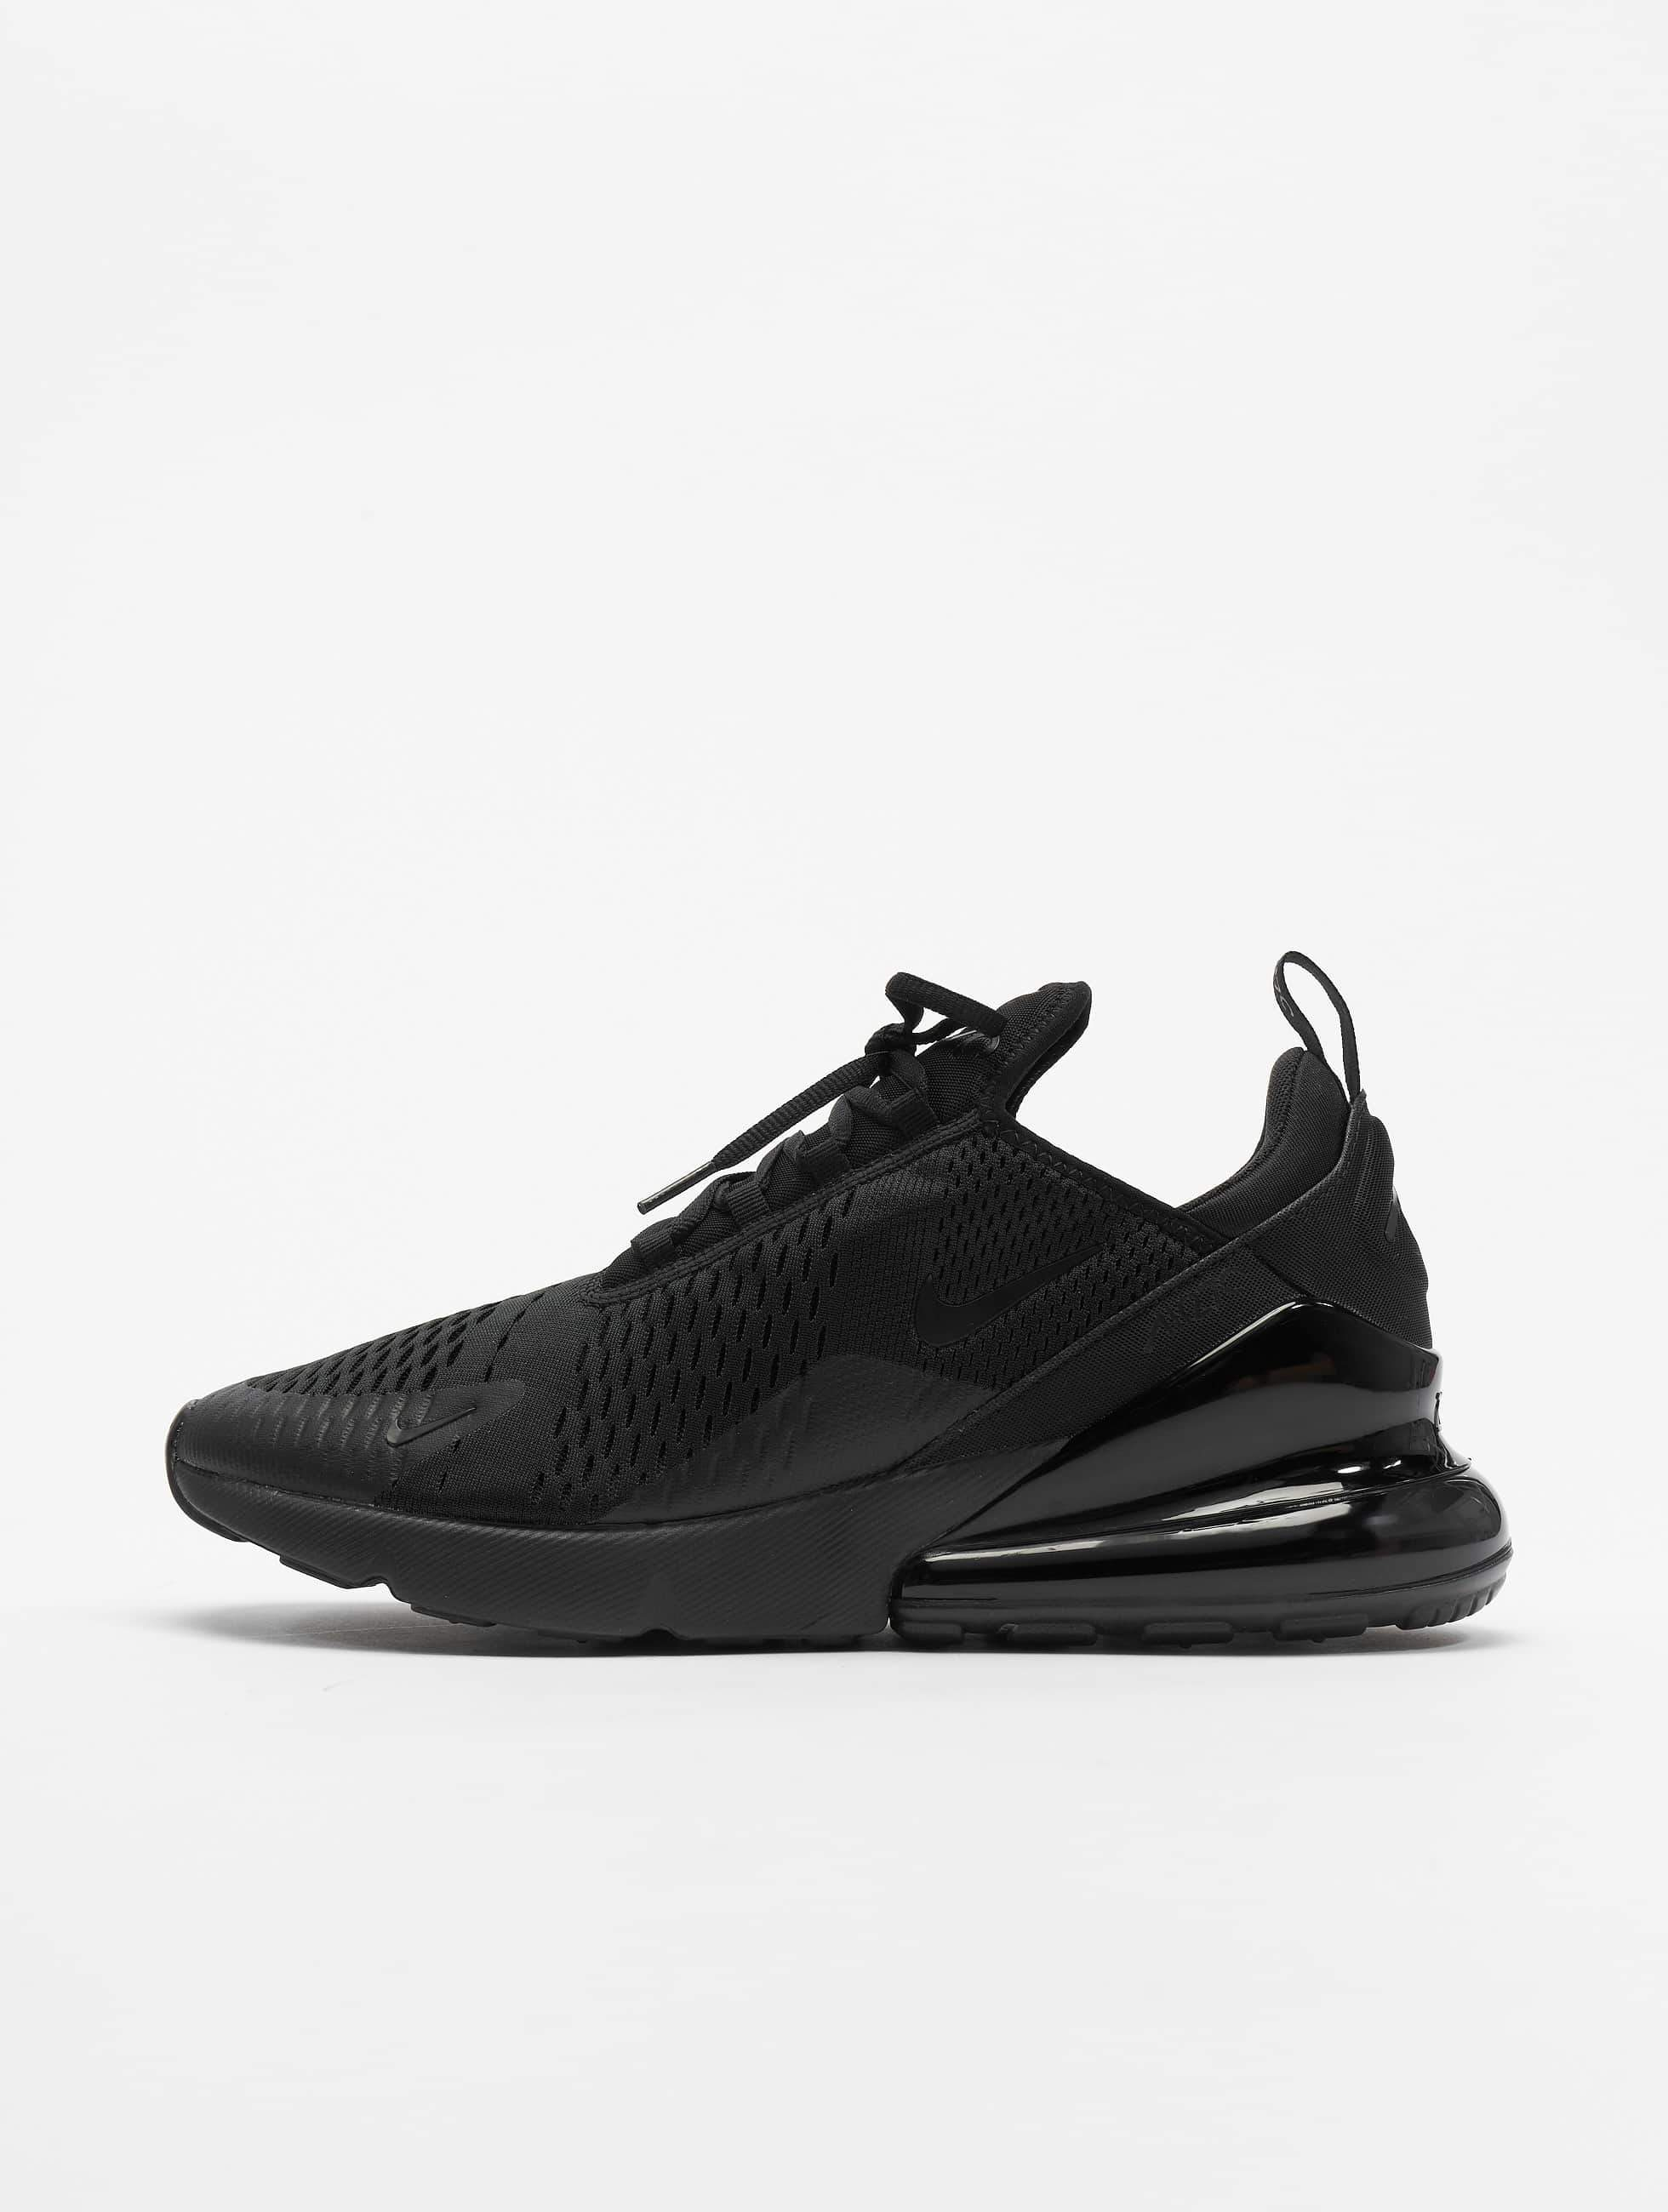 on sale performance sportswear more photos Nike Air Max 270 Sneakers Black/Black/Black